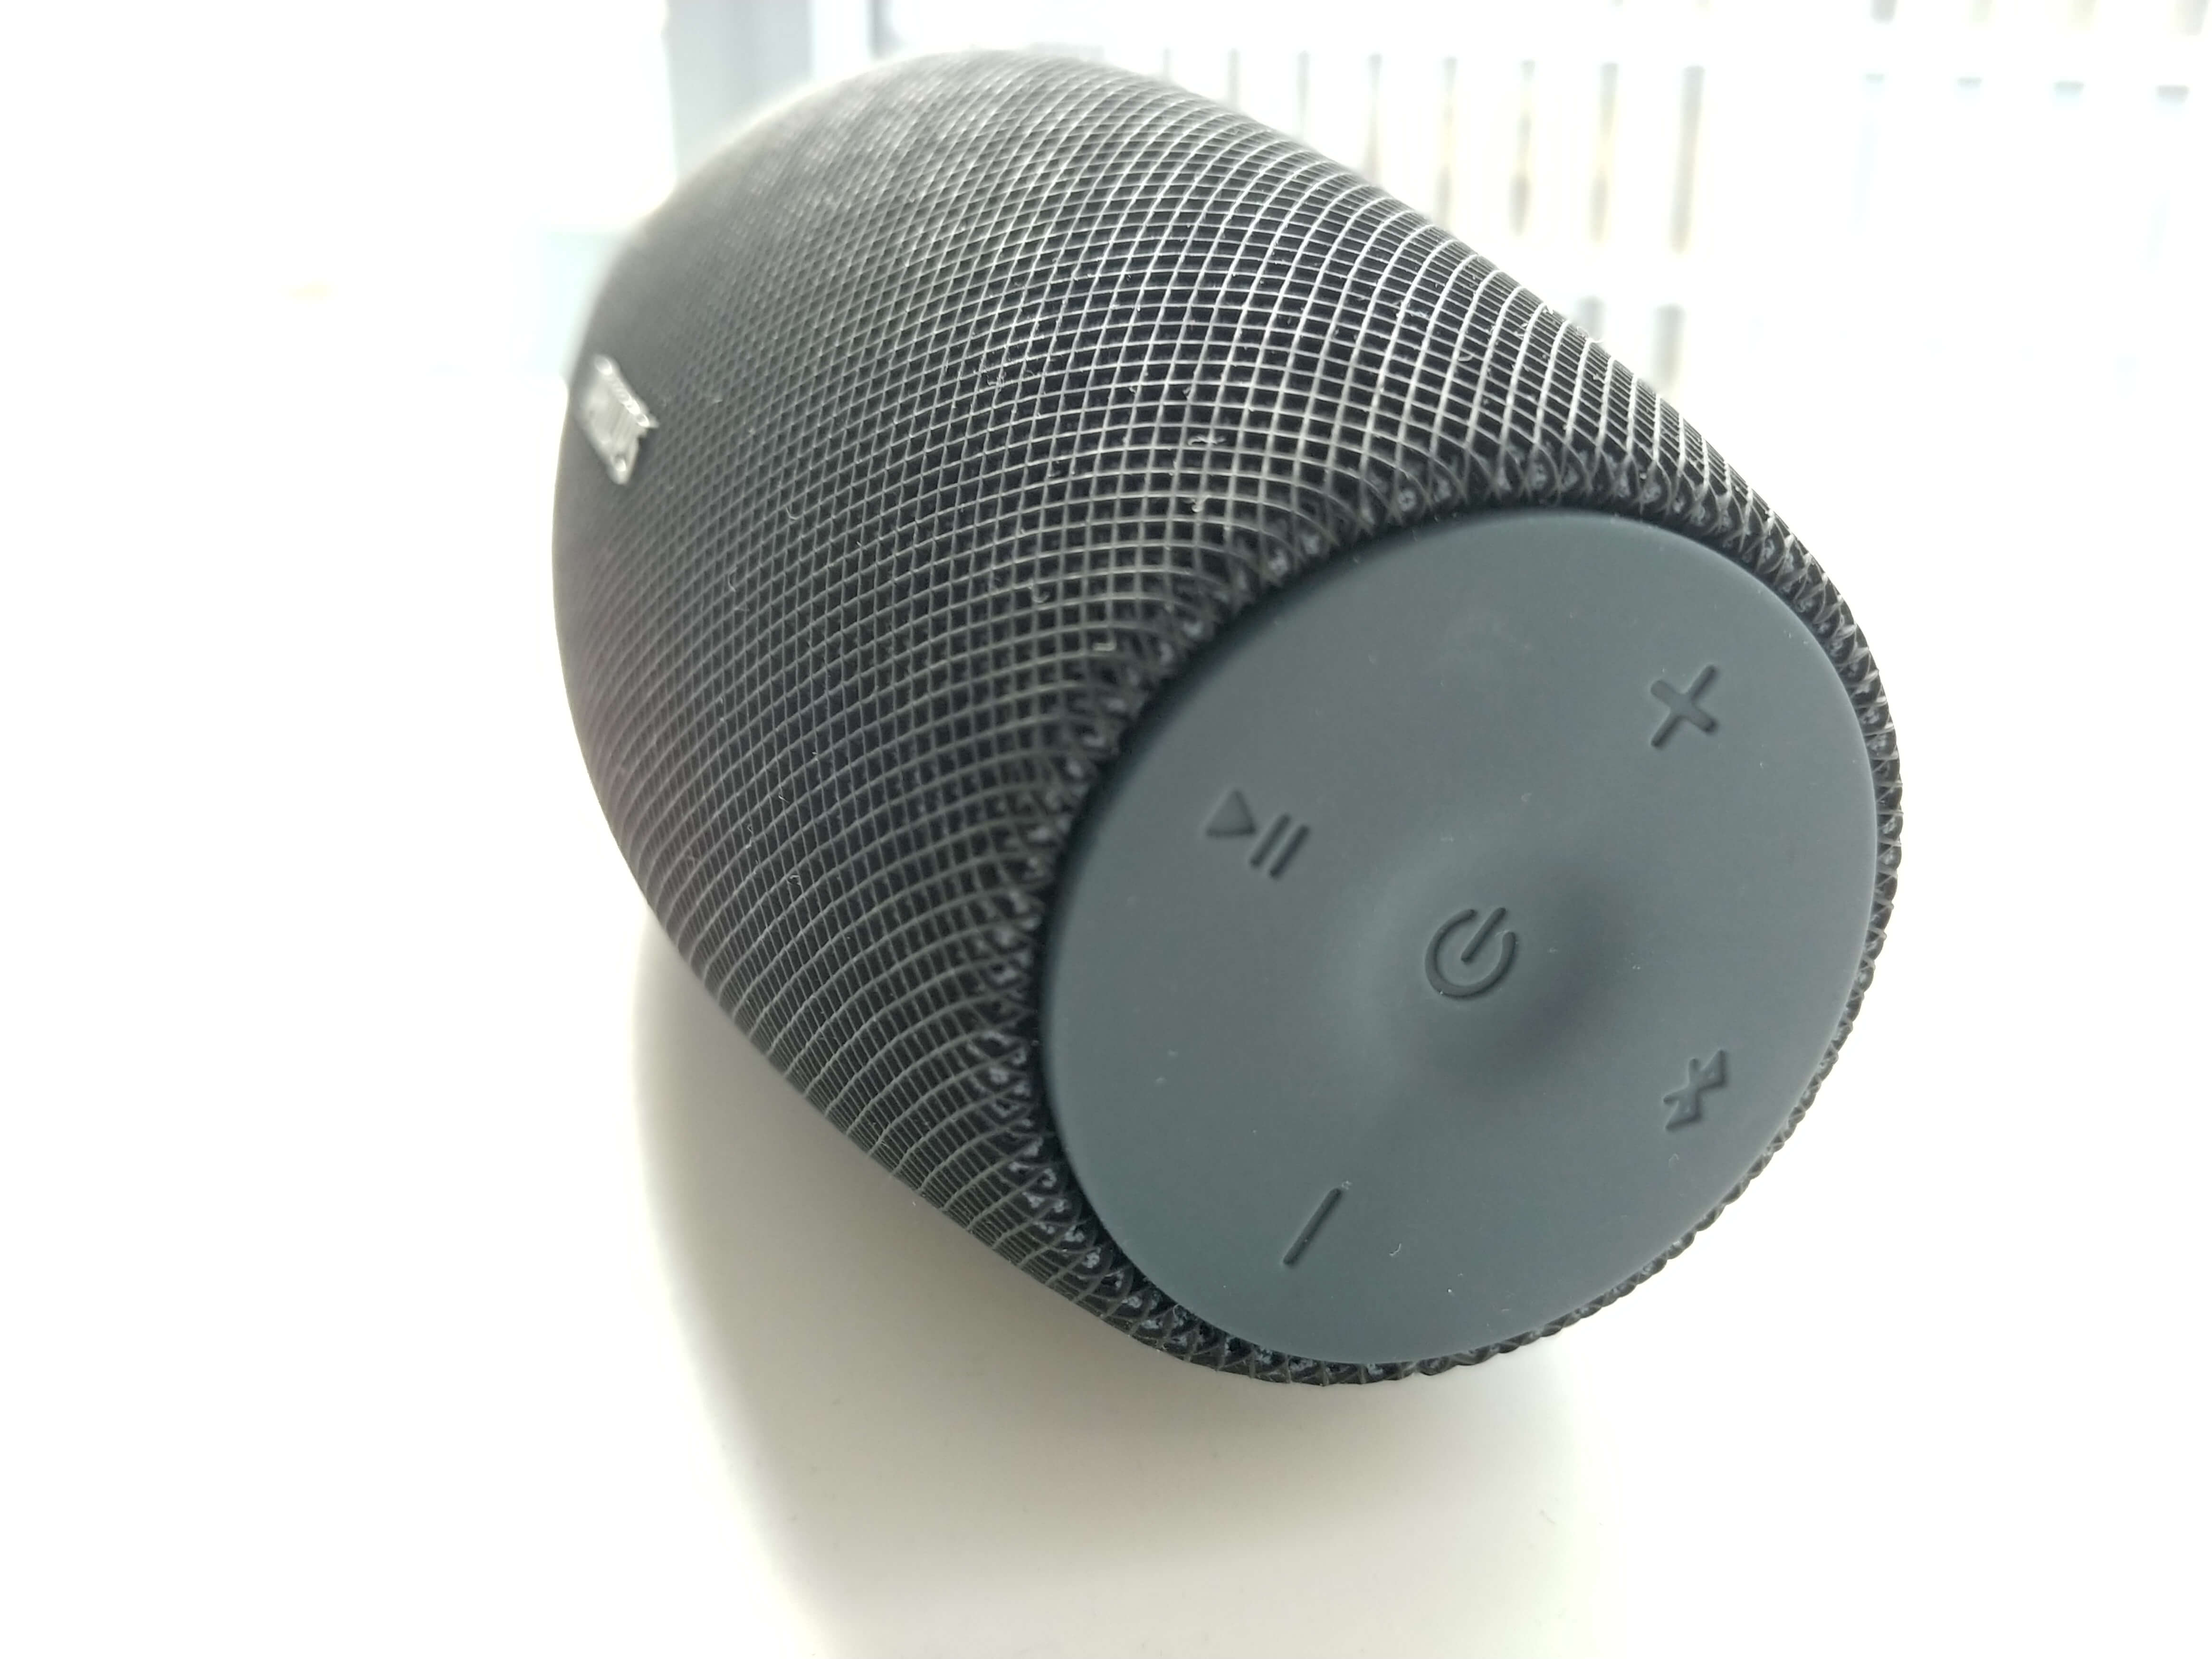 concours on vous offre une enceinte philips everplay. Black Bedroom Furniture Sets. Home Design Ideas